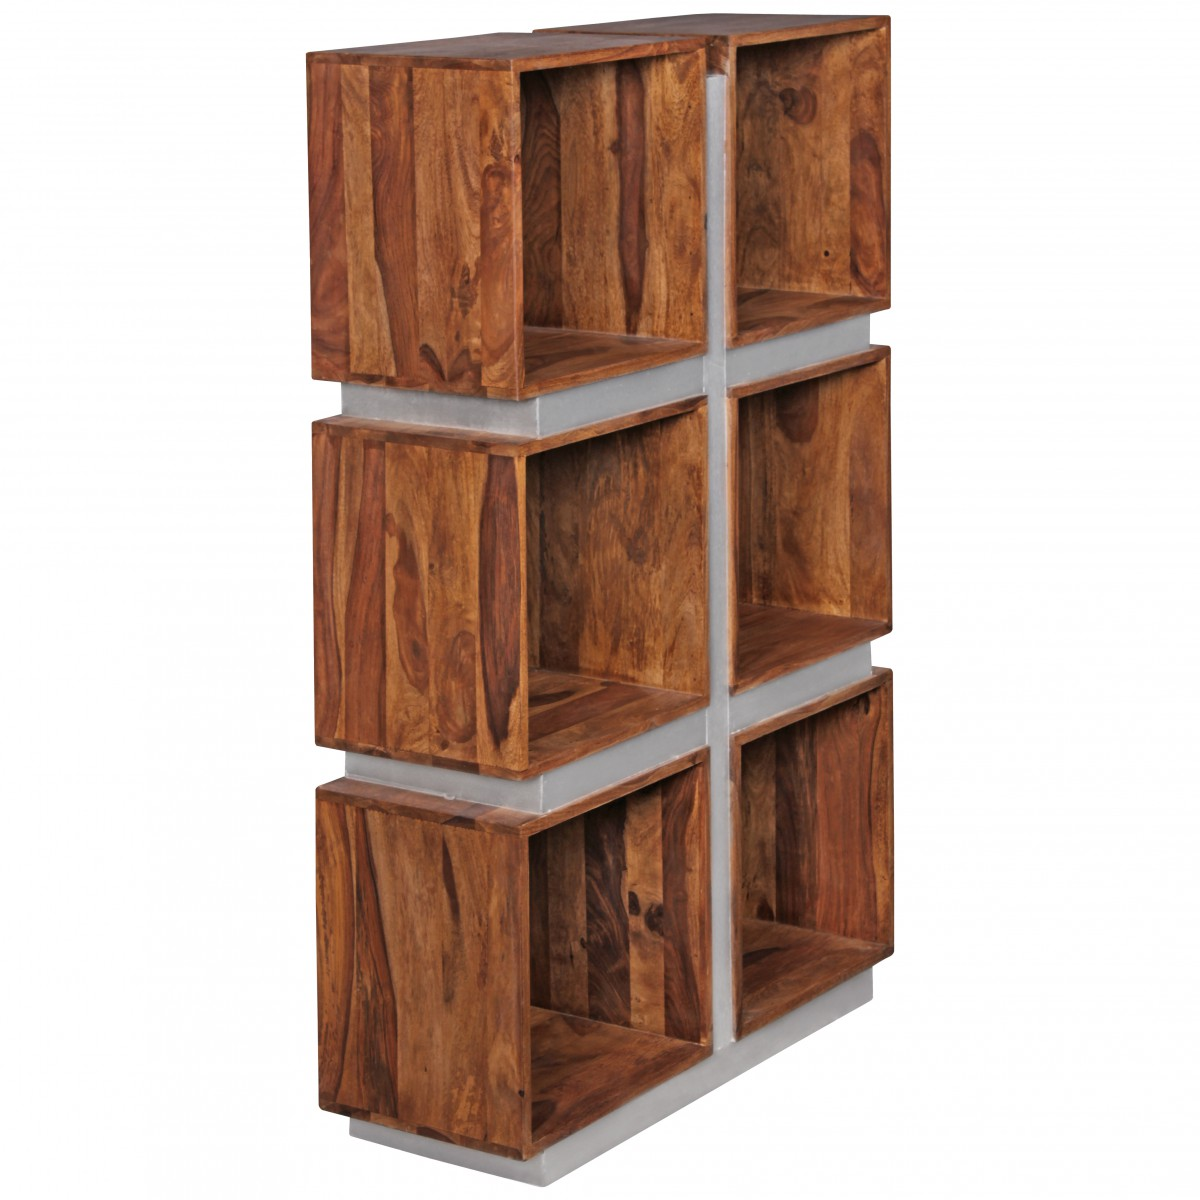 Holz Regalsystem Finebuy Bücherregal Massivholz 135 X 85 X 30 Cm Design